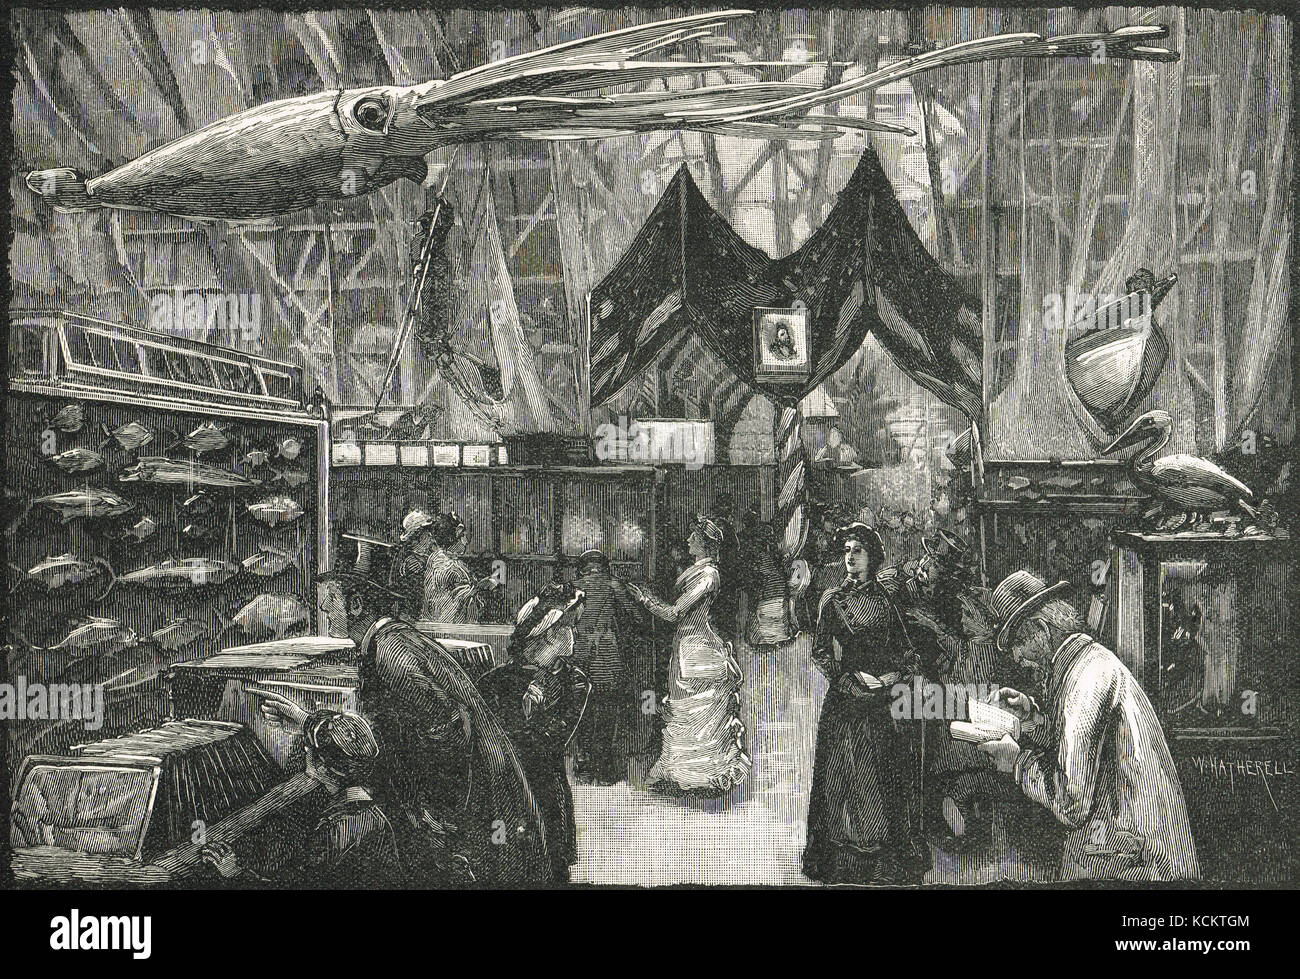 United States Court at The International Fisheries Exhibition of 1883, - Stock Image